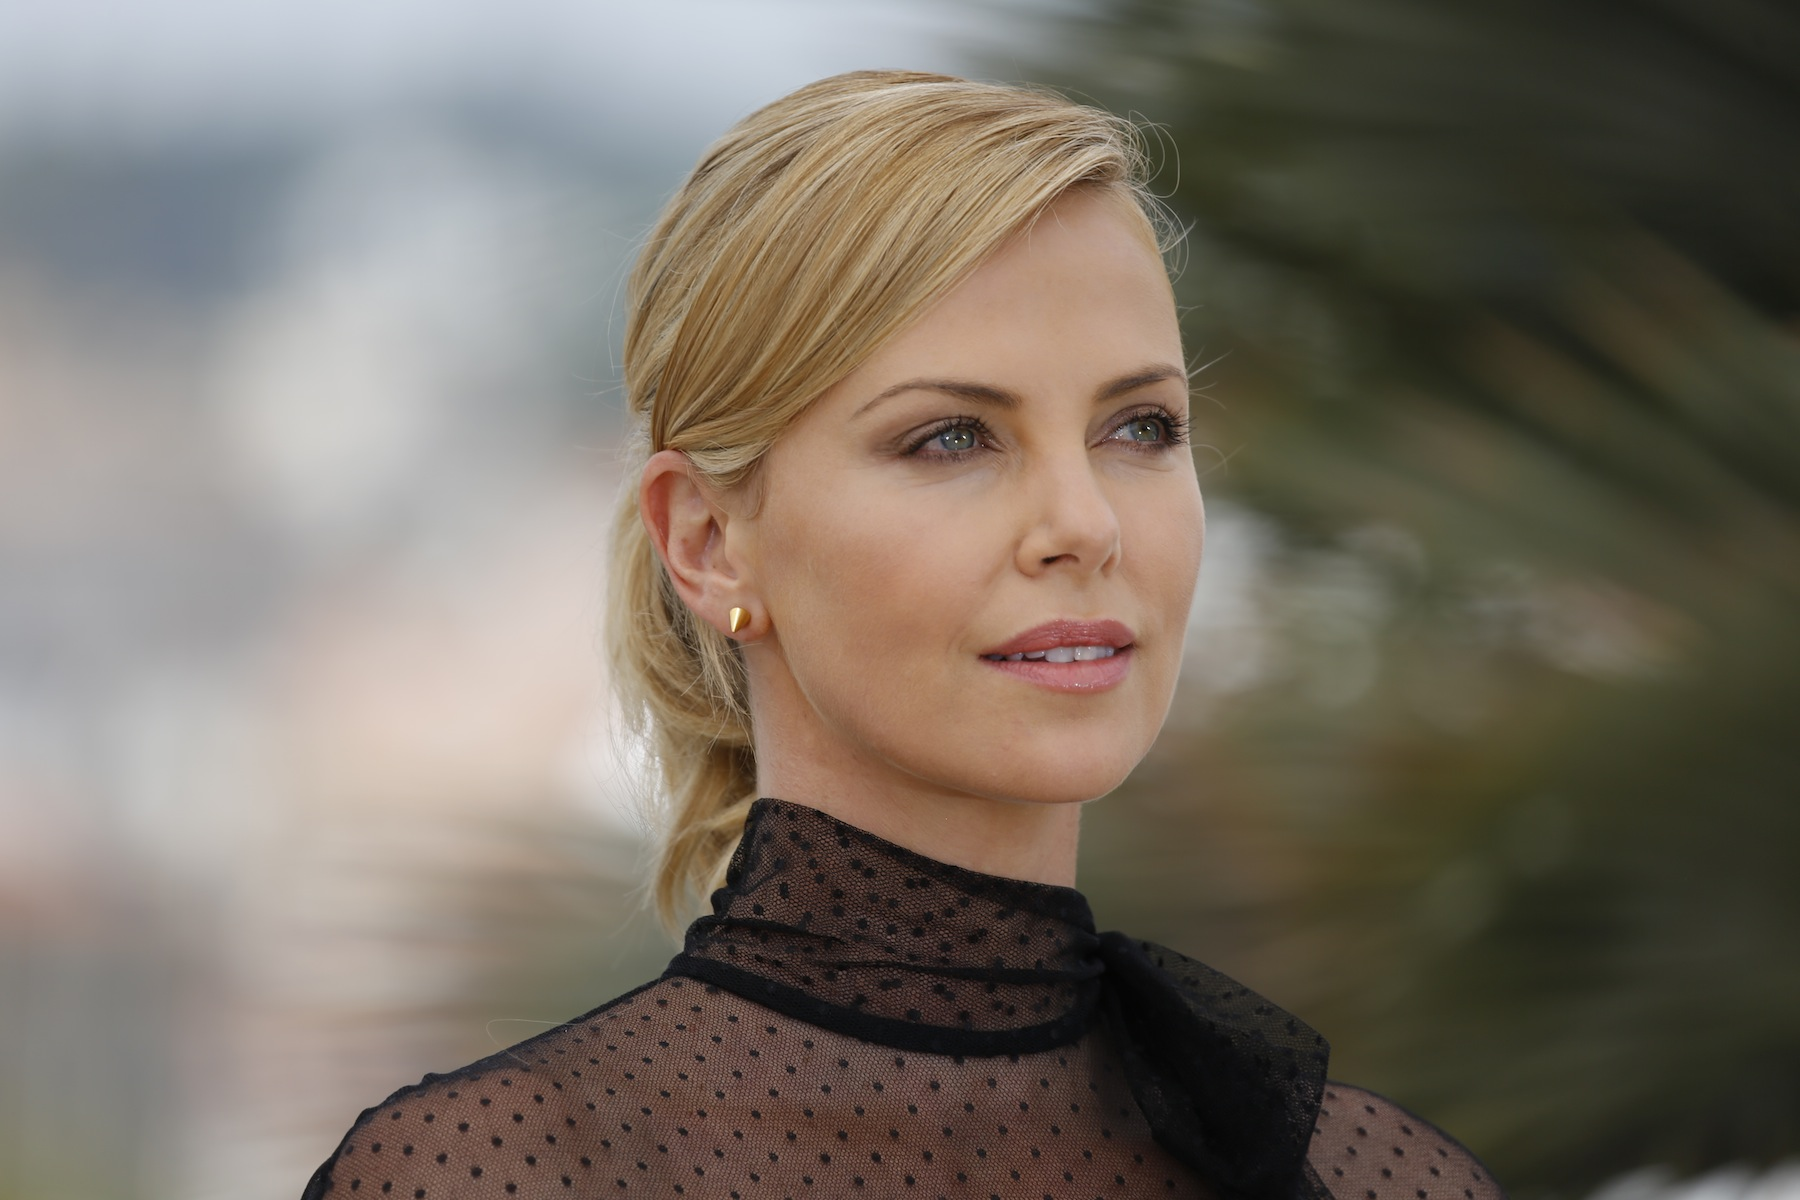 cute charlize theron stylish look free hd download laptop photos